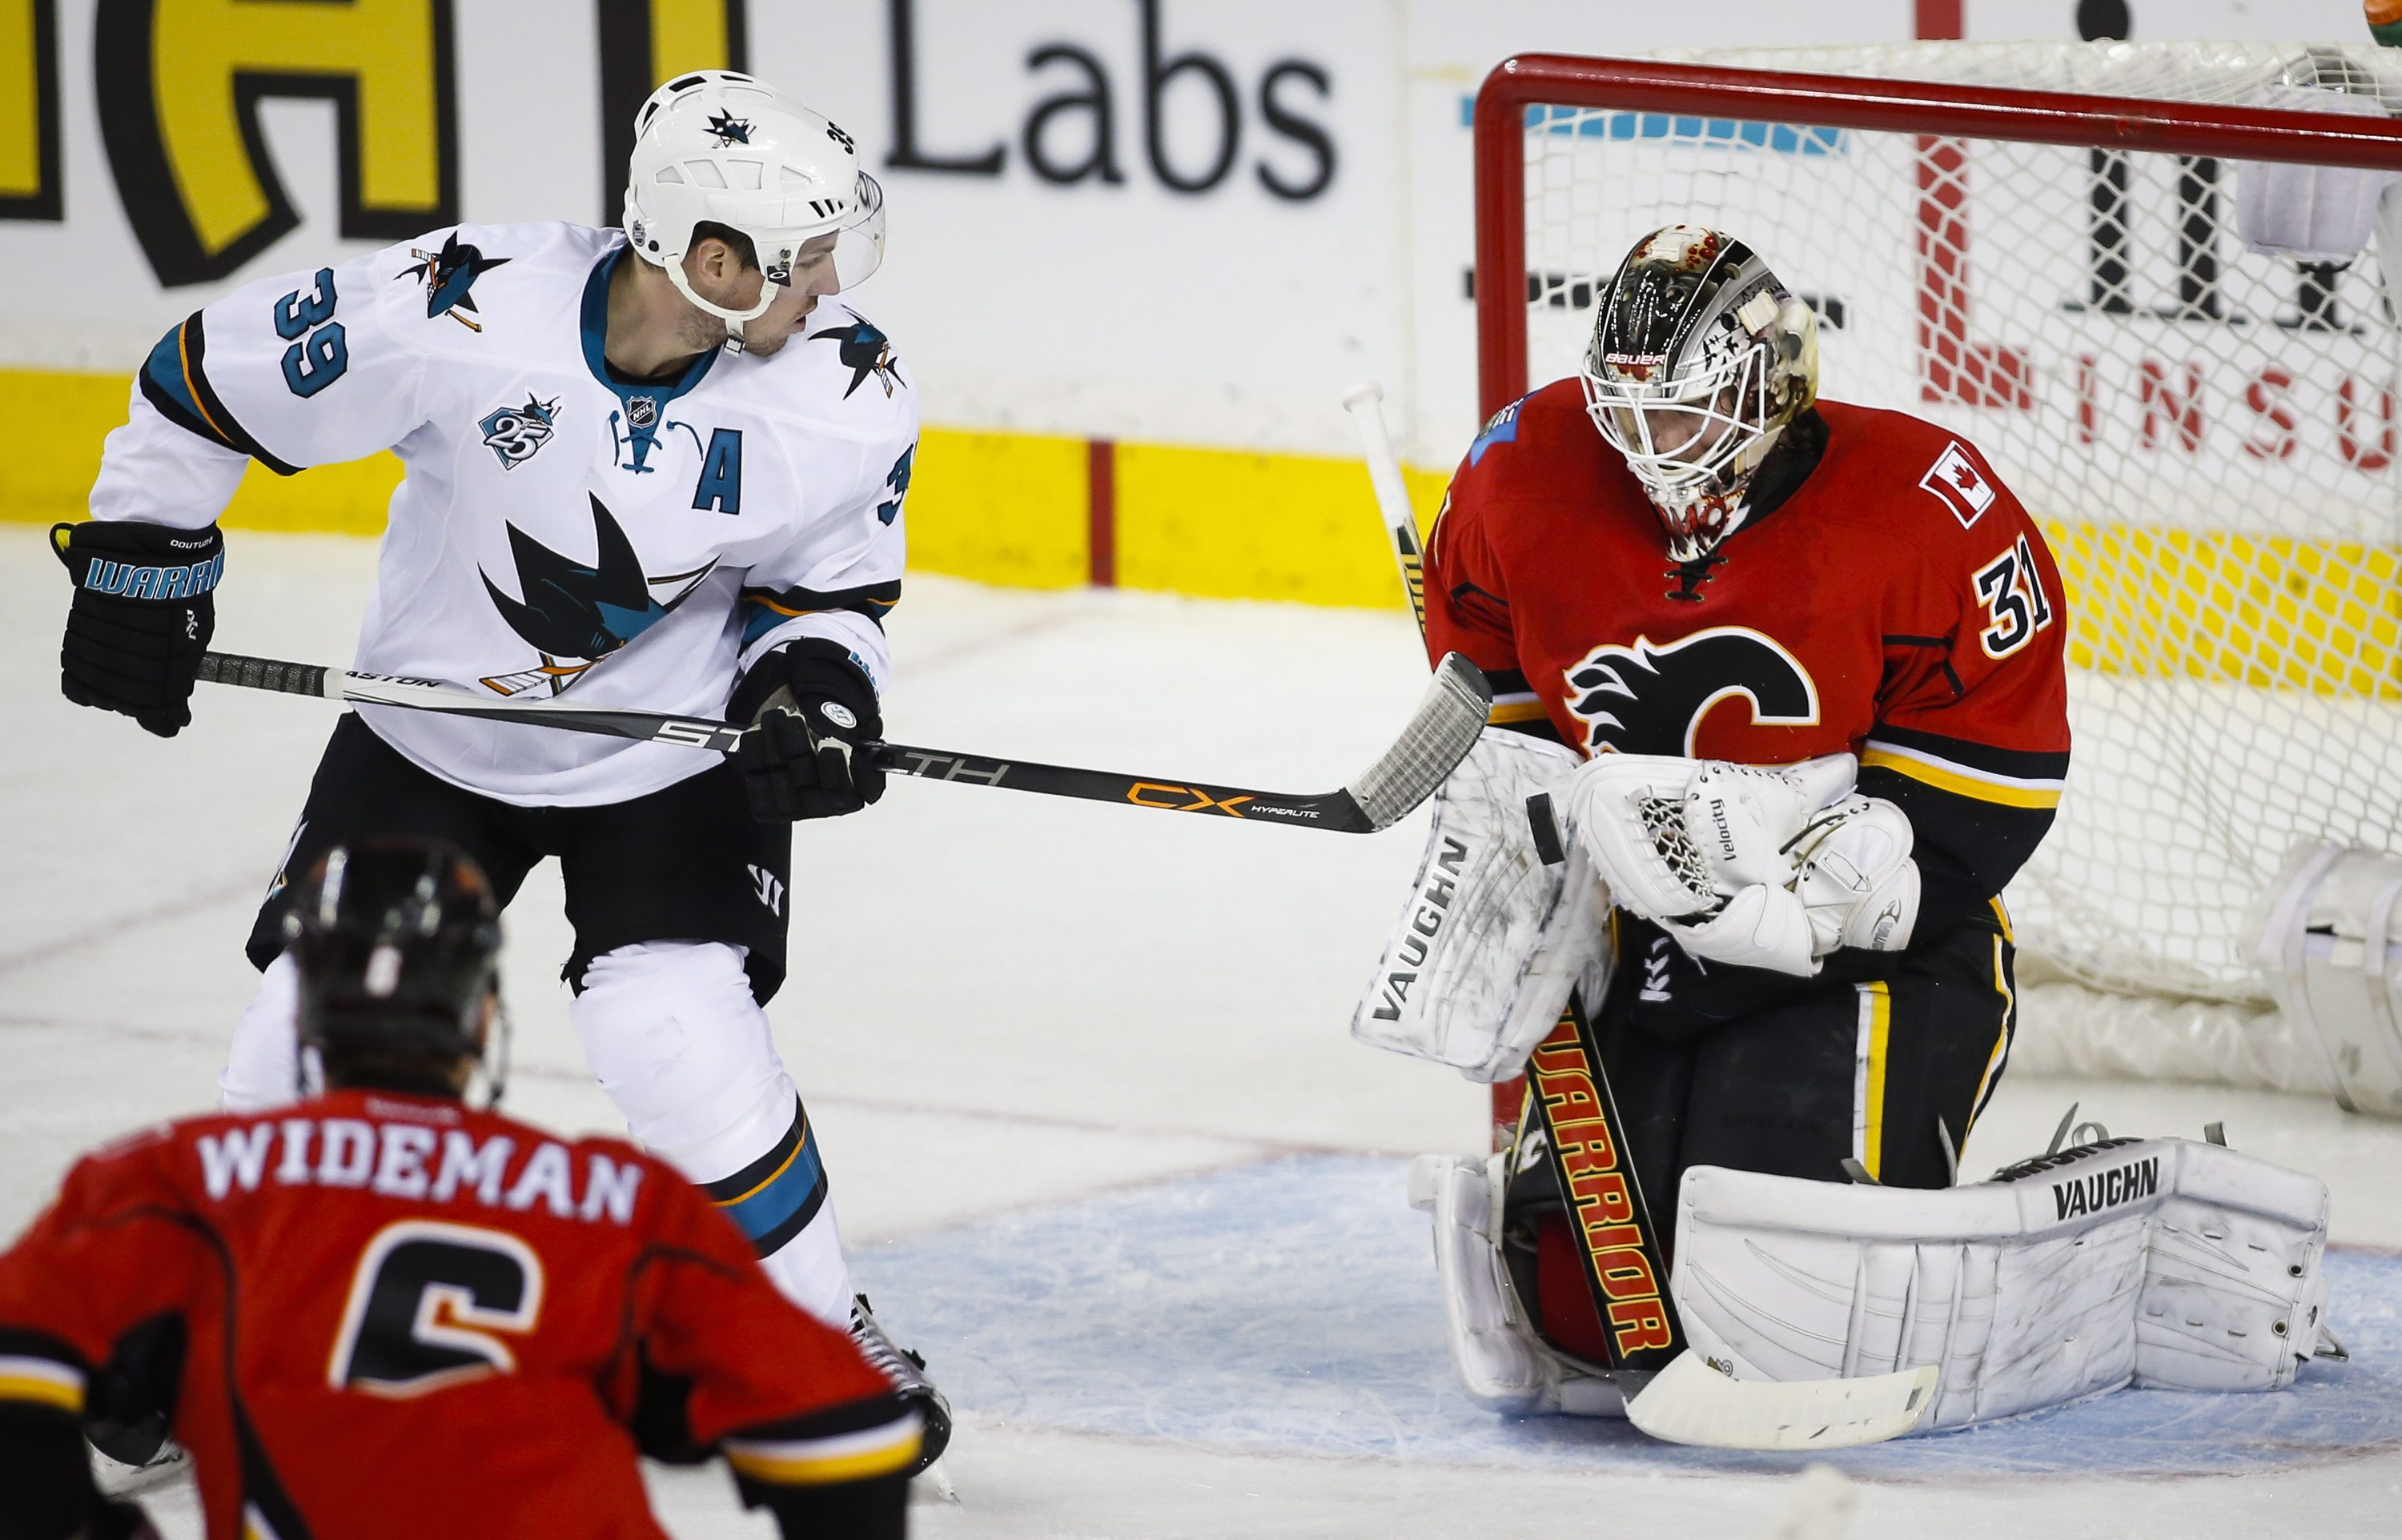 San Jose Sharks' Logan Couture, left, tries to get the puck past Calgary Flames' goalie Karri Ramo, of Finland, during first period NHL hockey action, in Calgary, on Tuesday, Dec. 8, 2015. (Jeff McIntosh/The Canadian Press via AP)